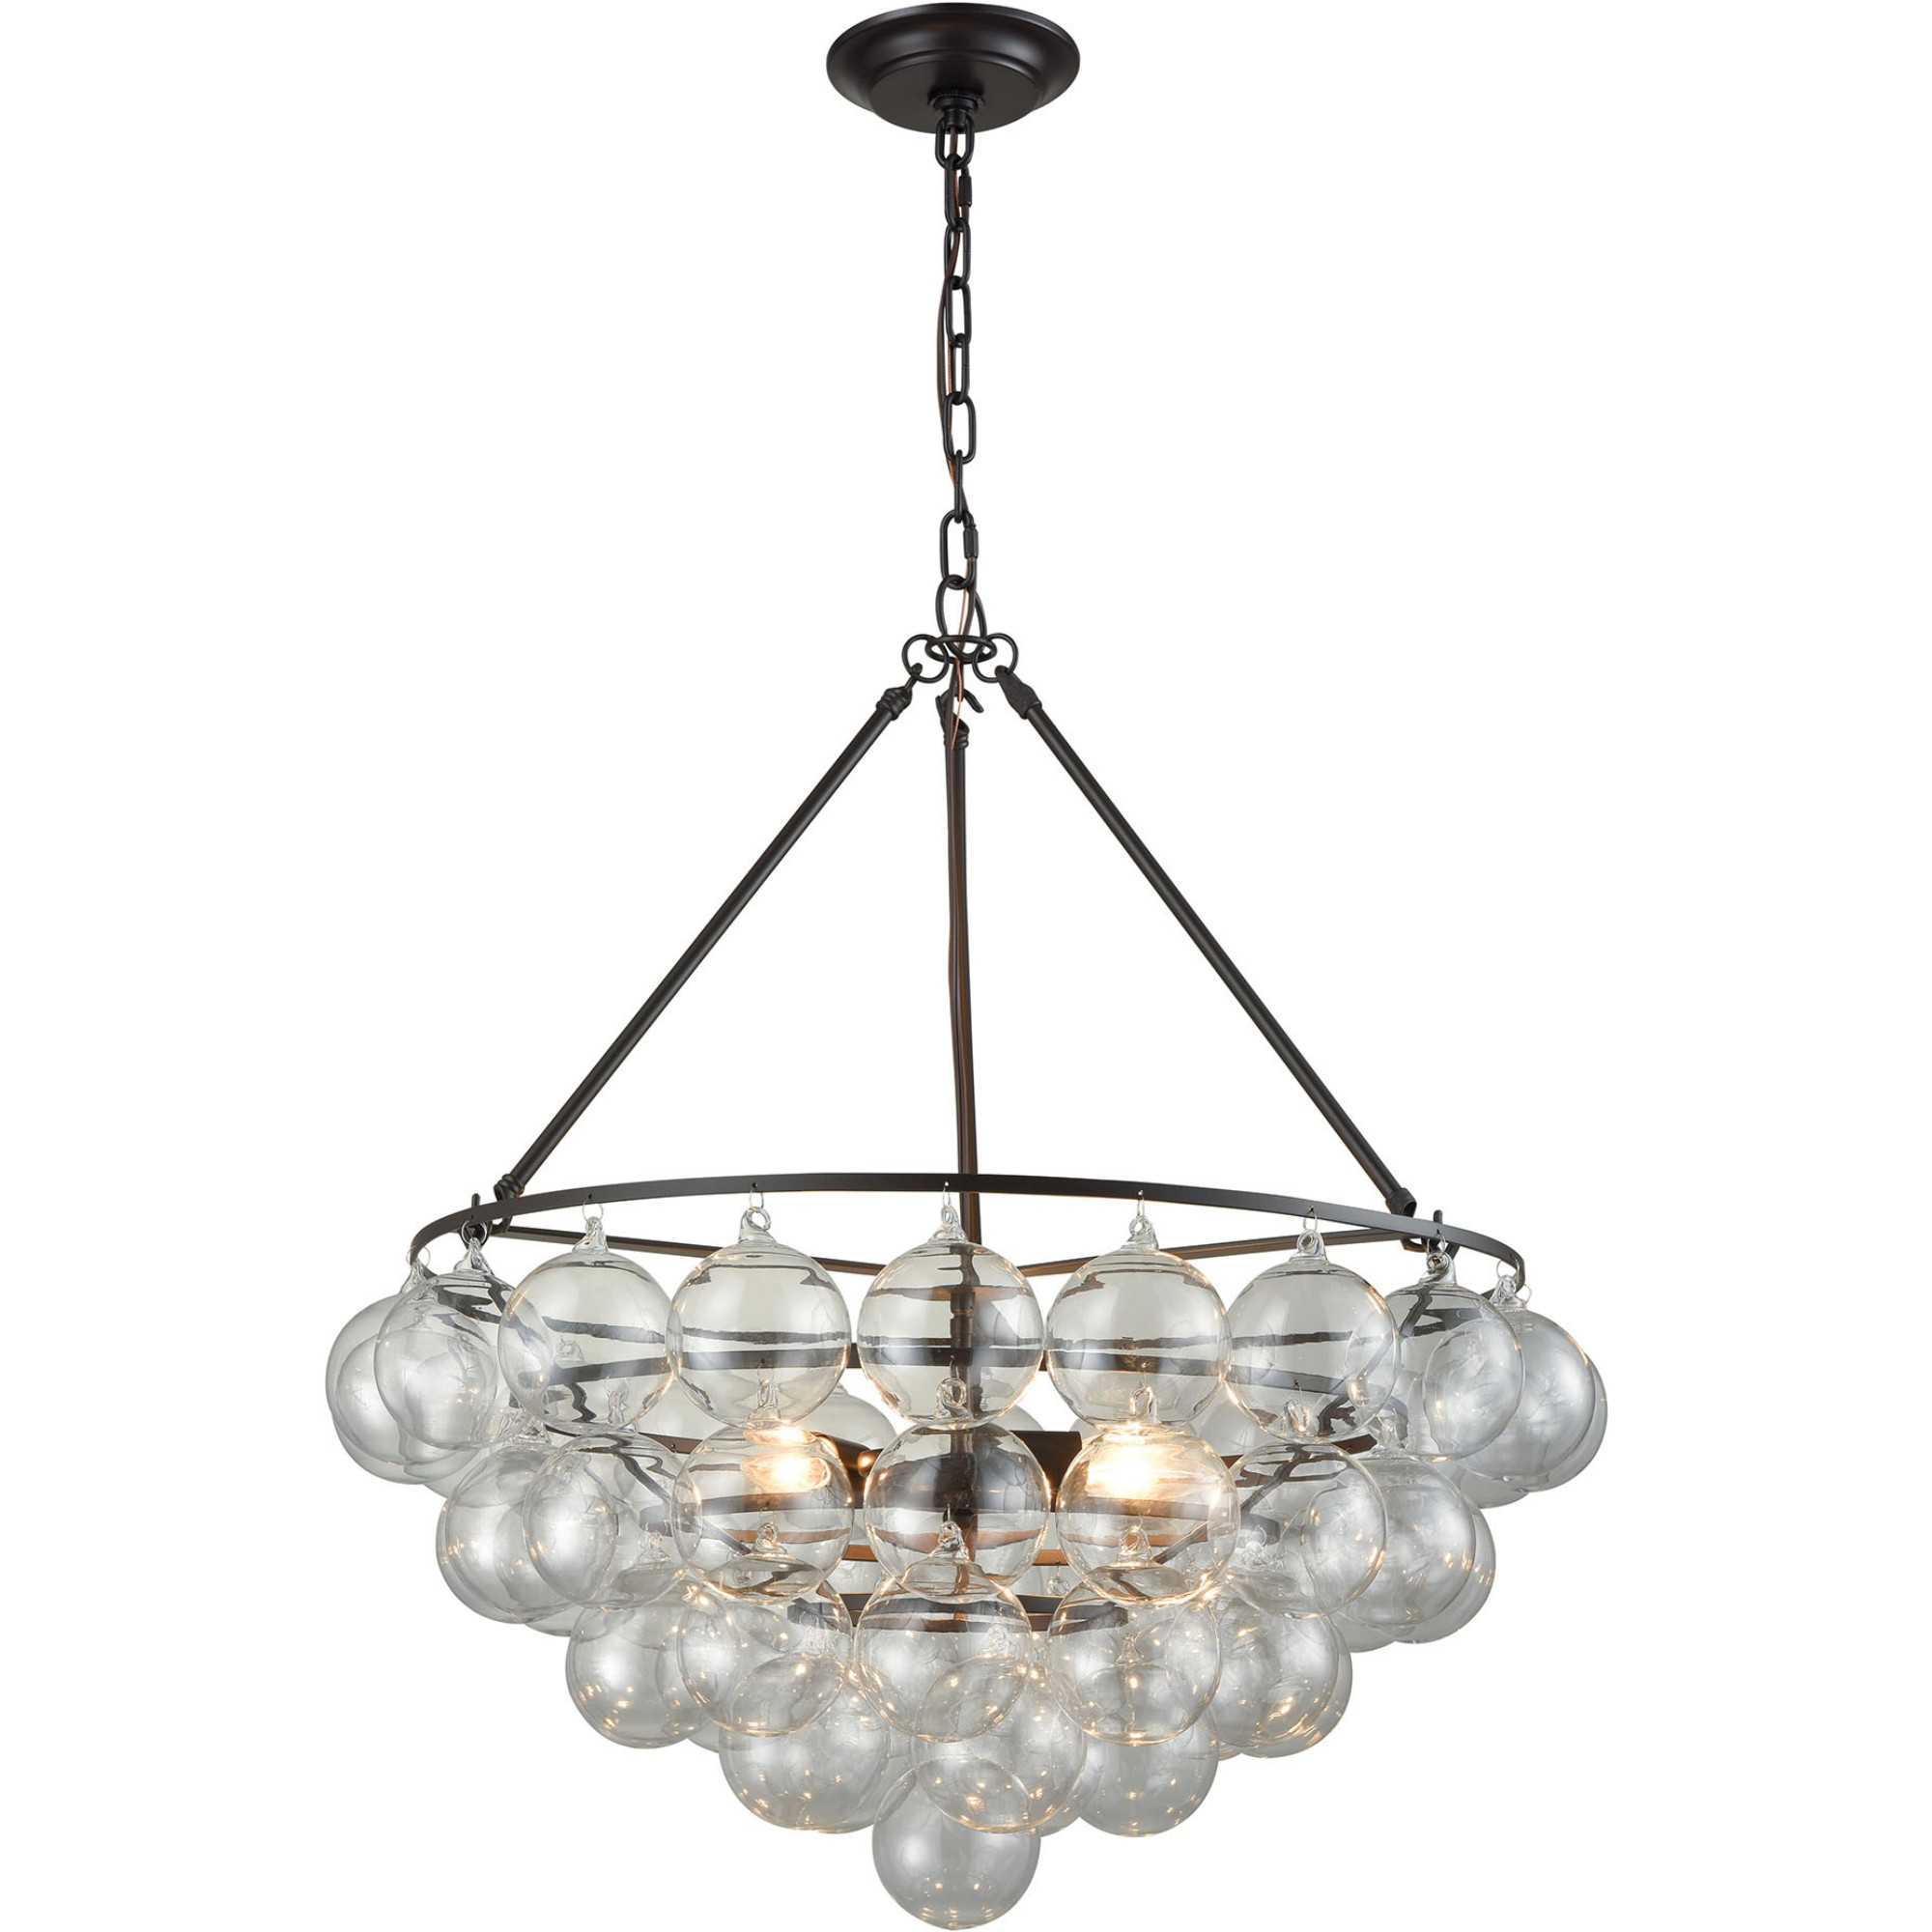 Dimond Lighting D3147 Cuvee Chandelier Oil Rubbed Bronze & Clear